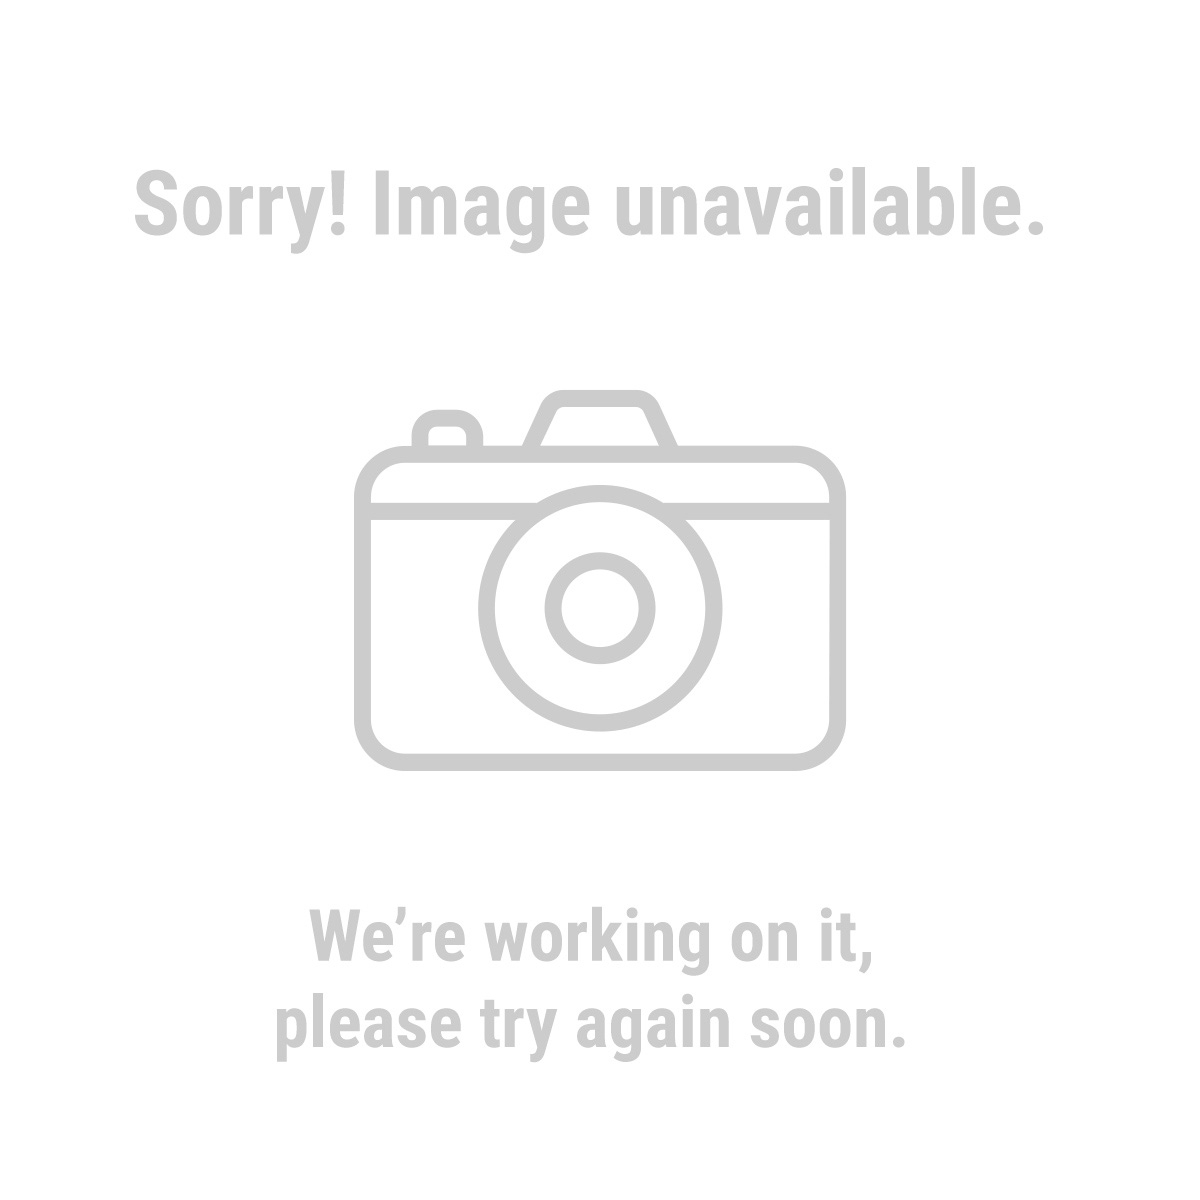 Central Pneumatic 96972 Abrasive Blast Gun with Bag